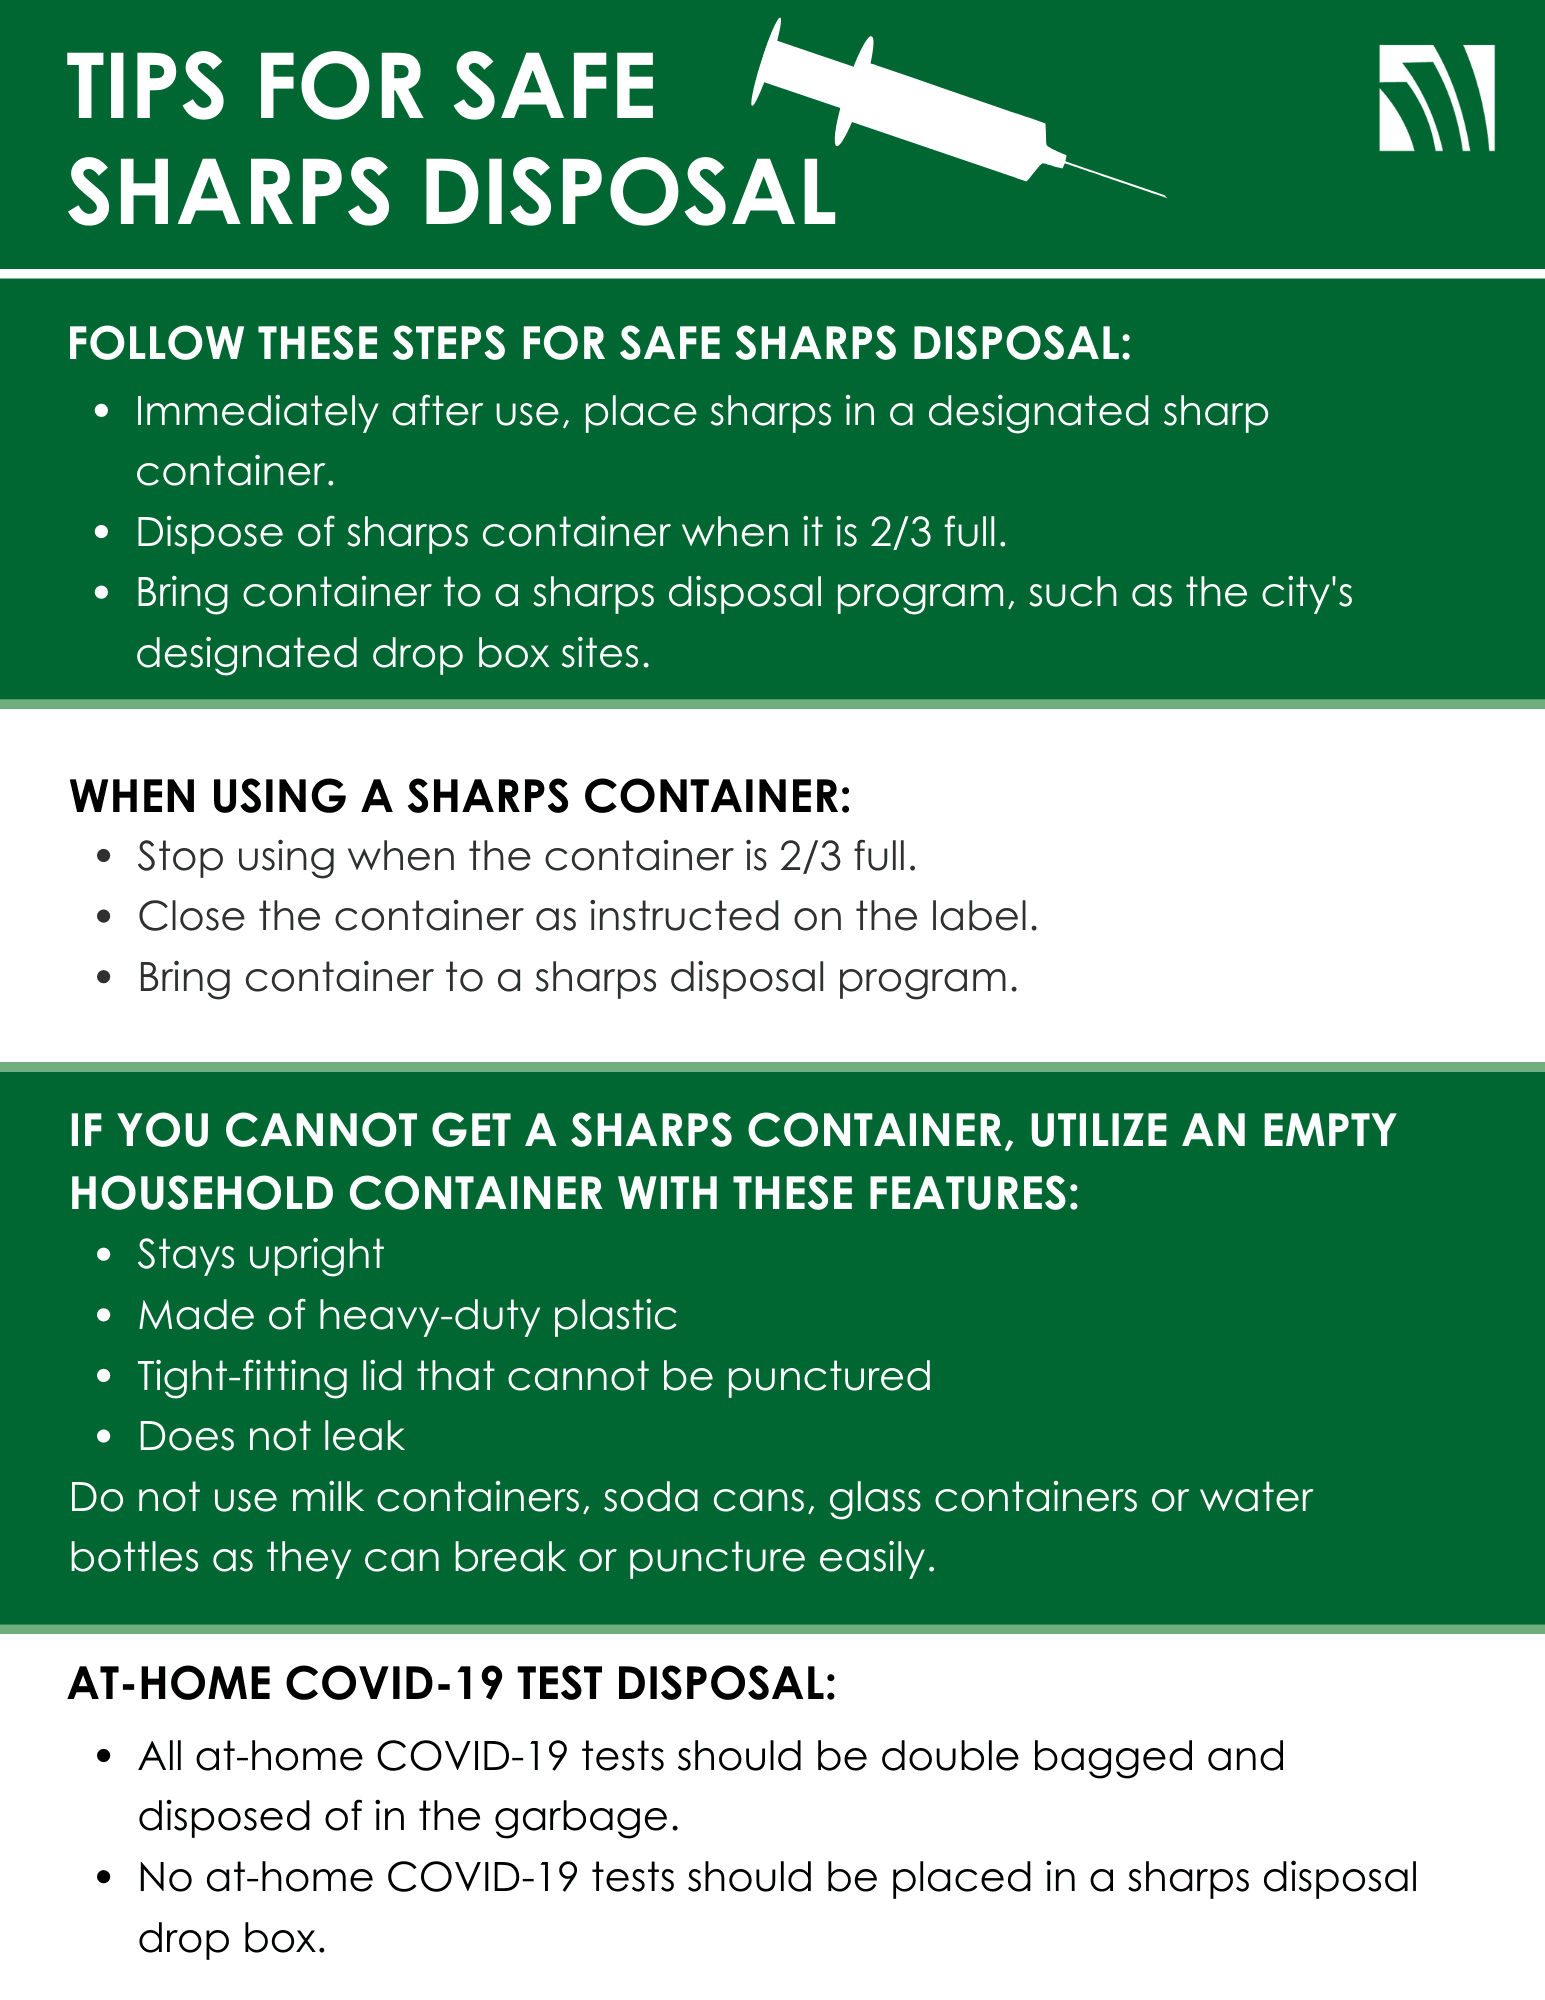 11 tips for safe sharps disposal image